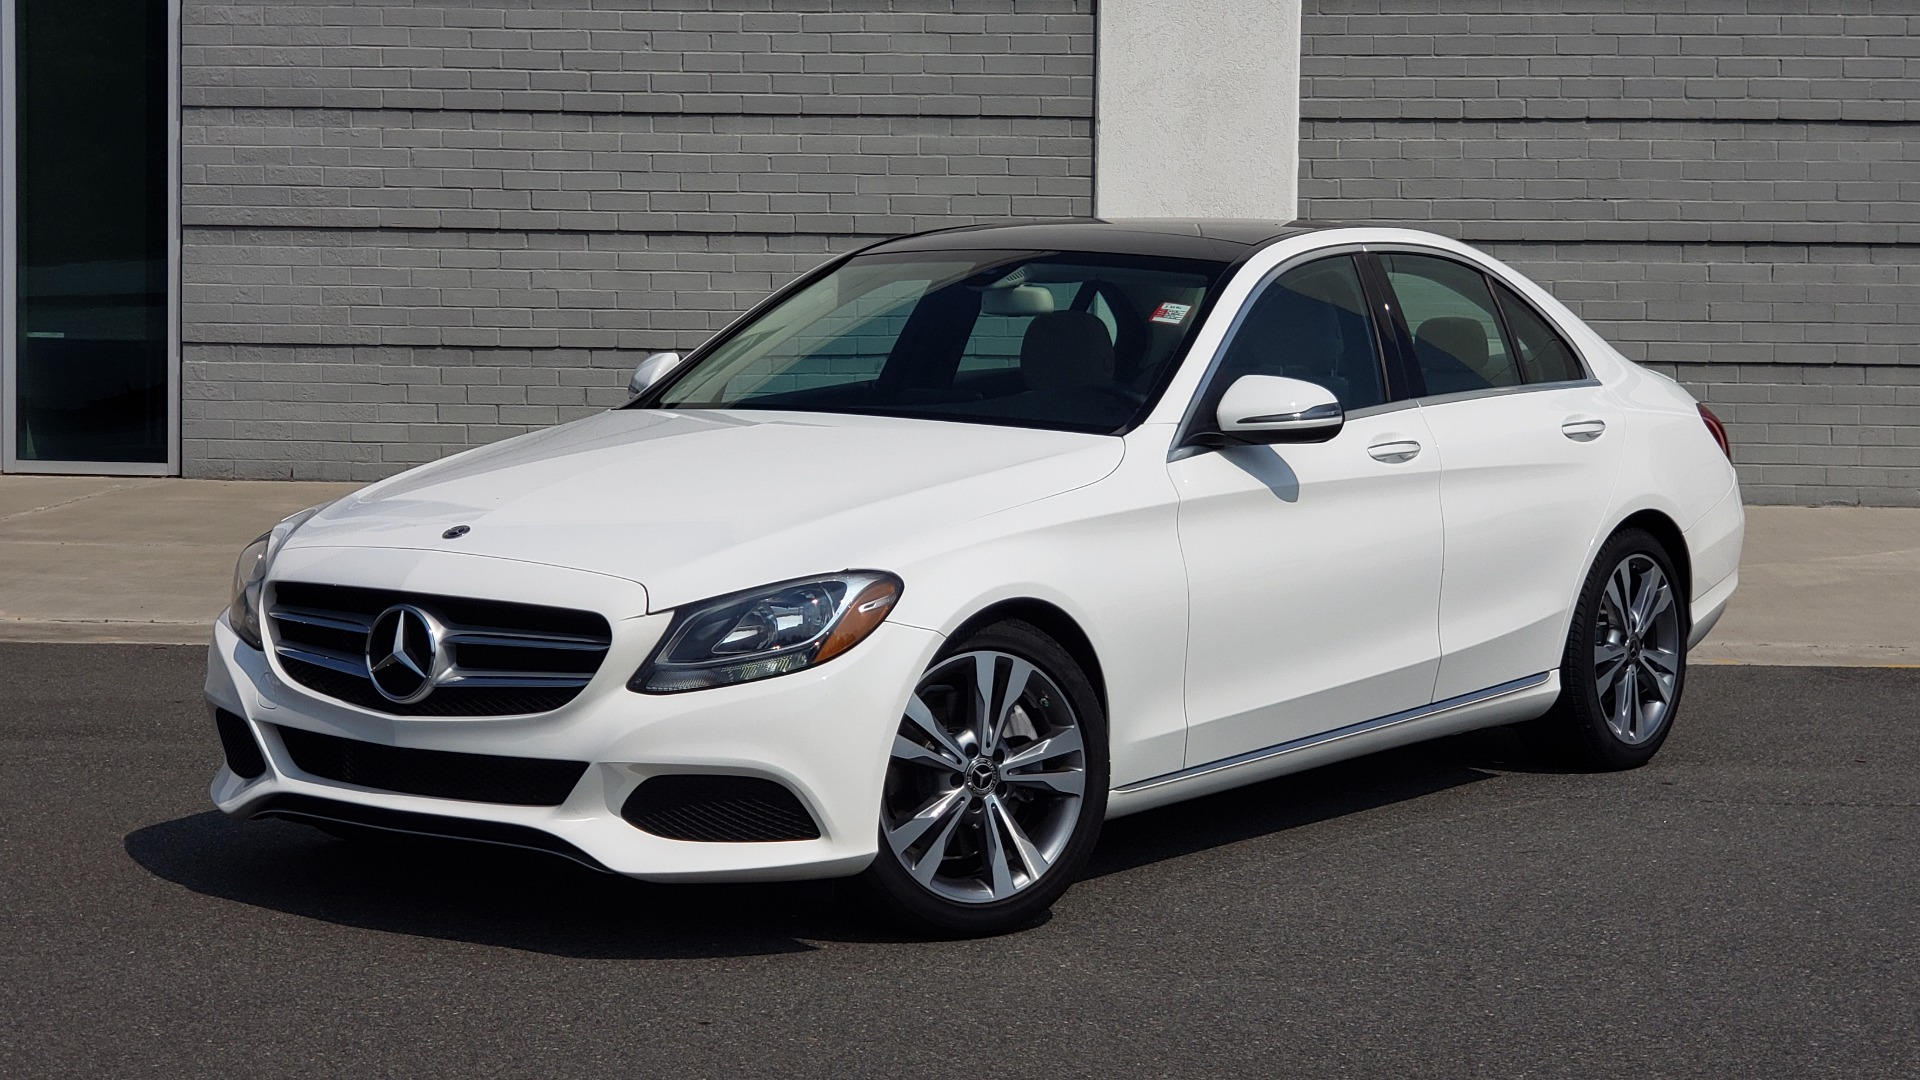 Used 2018 Mercedes-Benz C-CLASS C 300 PREMIUM / KEYLESS-GO / APPLE / PANO-ROOF / REARVIEW for sale $28,295 at Formula Imports in Charlotte NC 28227 1